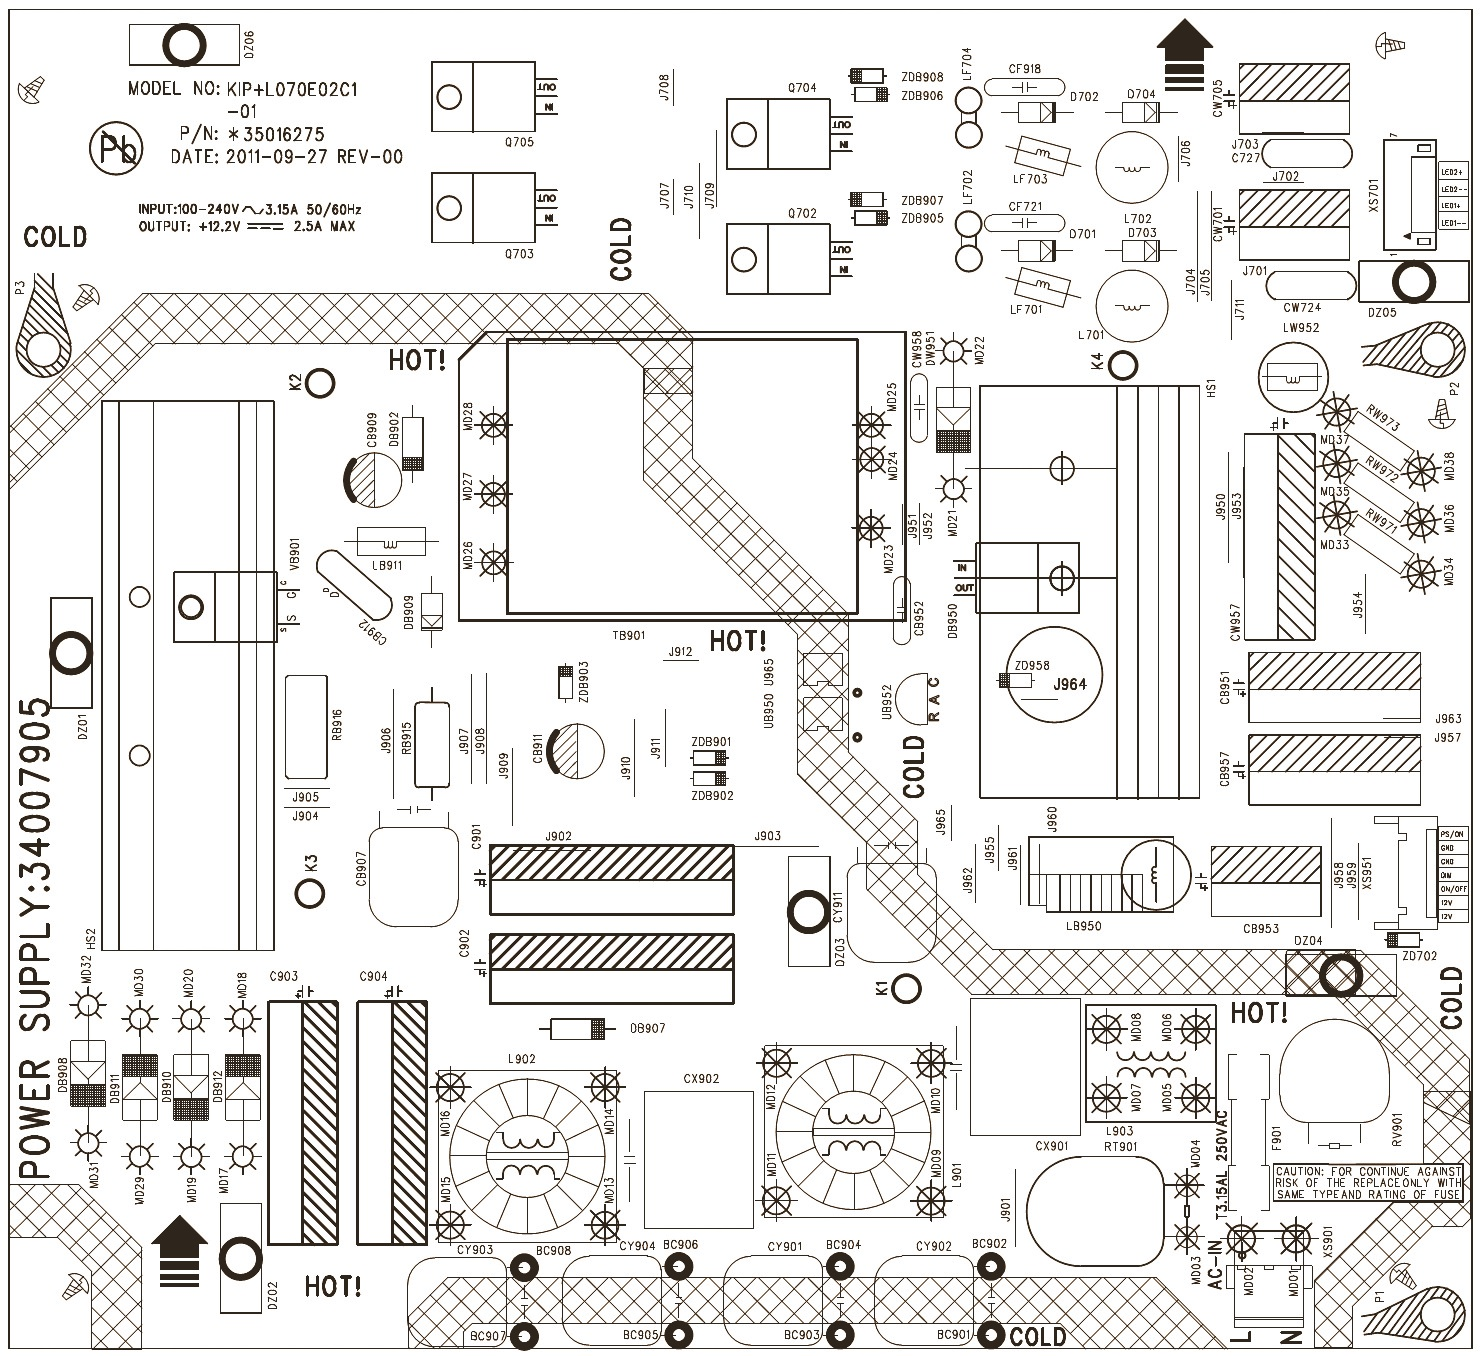 KONKA LED LCD TV 32HS05 - SMPS SCHEMATIC